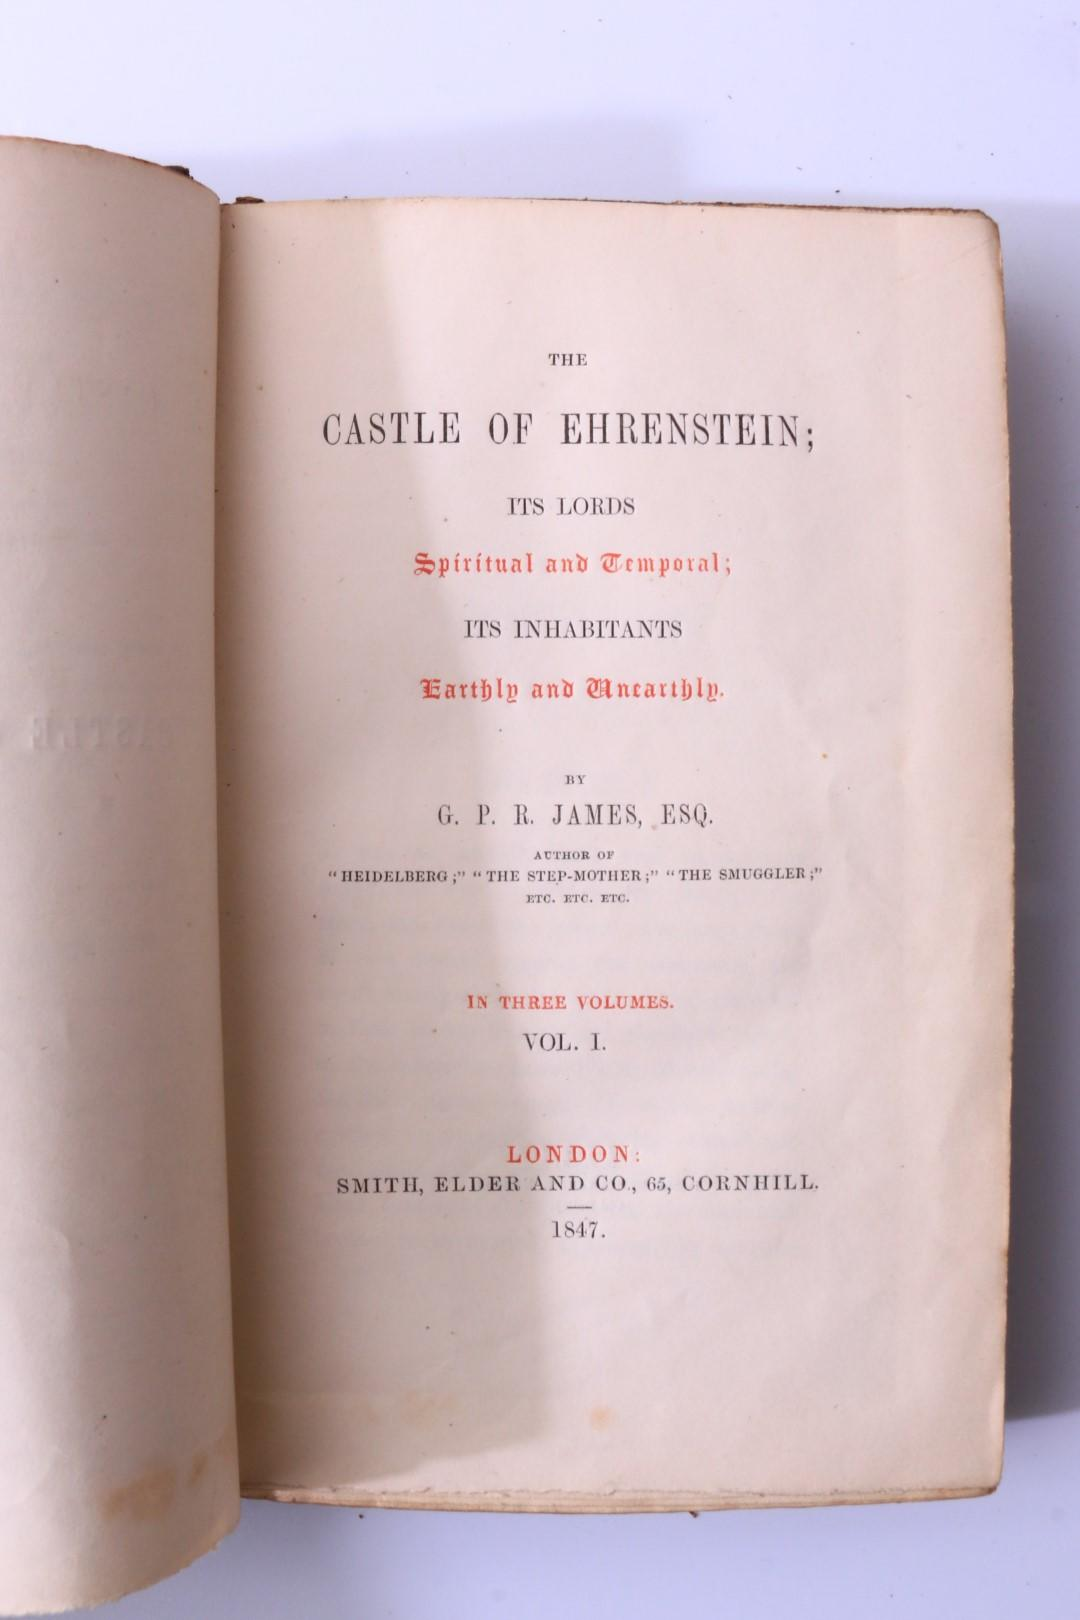 G.P.R. James - The Castle of Ehrenstein - Smith, Elder & Co., 1847, First Edition.